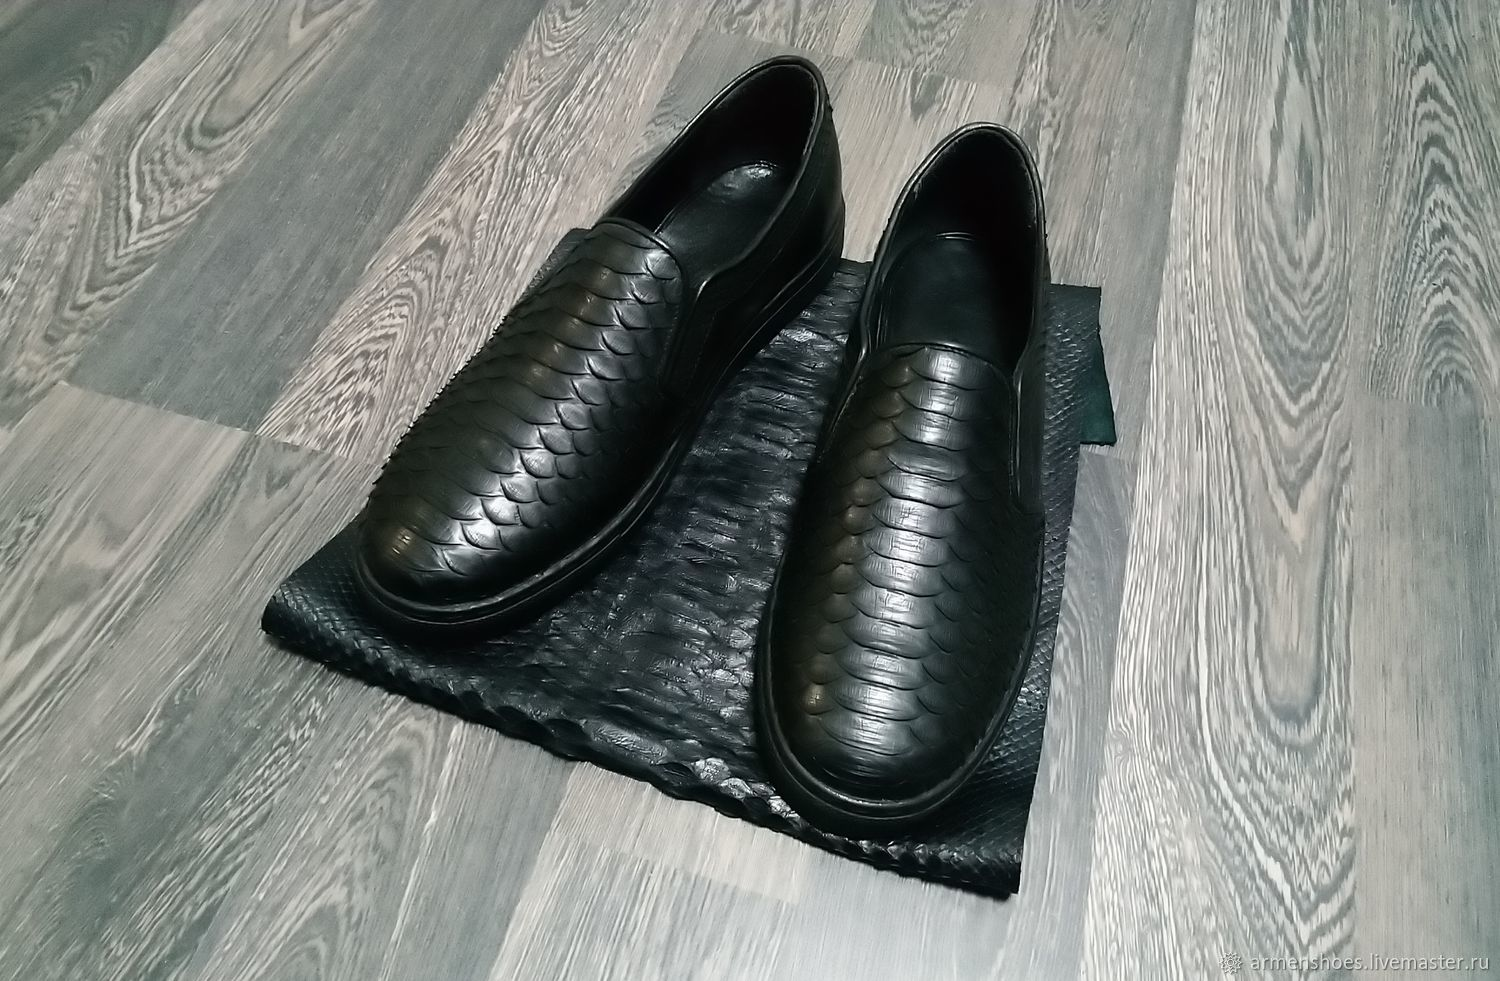 Slip-ons made of genuine Python leather and calfskin, in stock!, Slip-ons, Tosno,  Фото №1